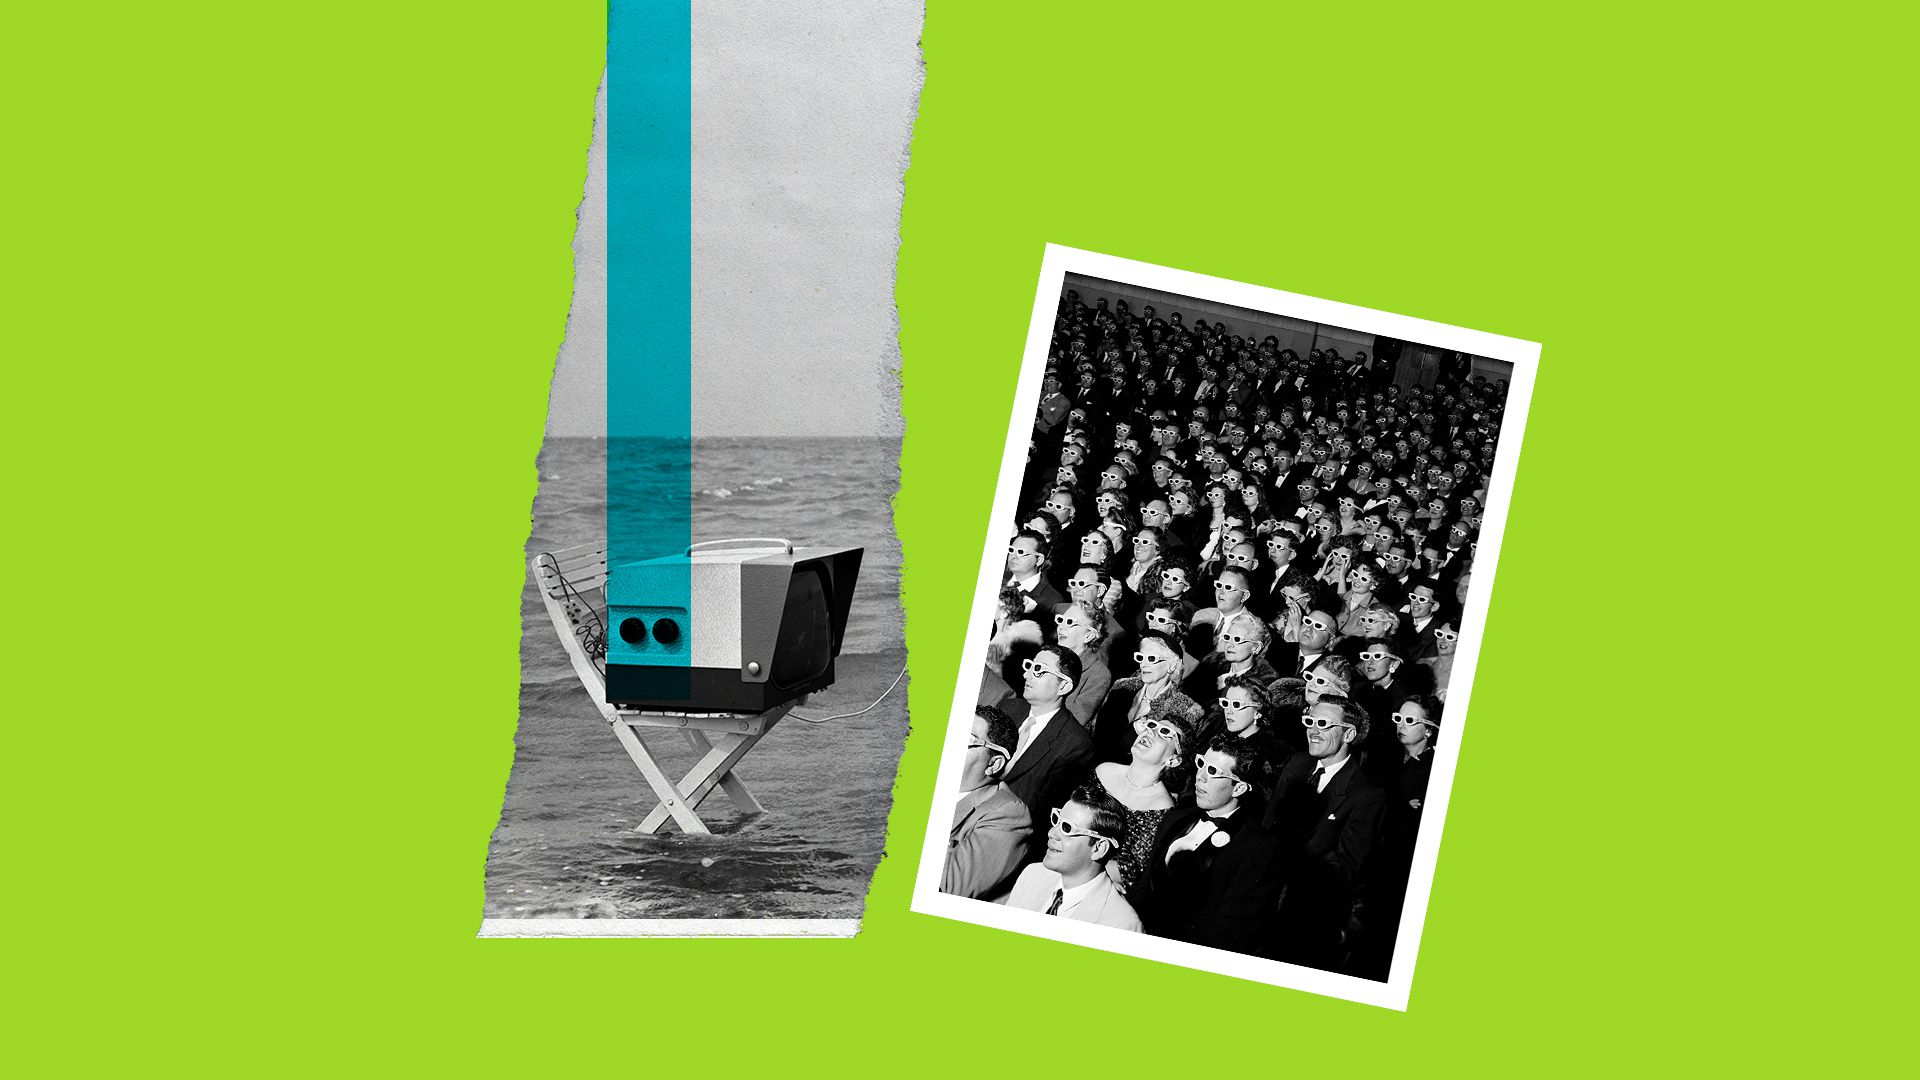 Collage illustration of a television in a stream of water near a historical image of people watching an early 3D film.